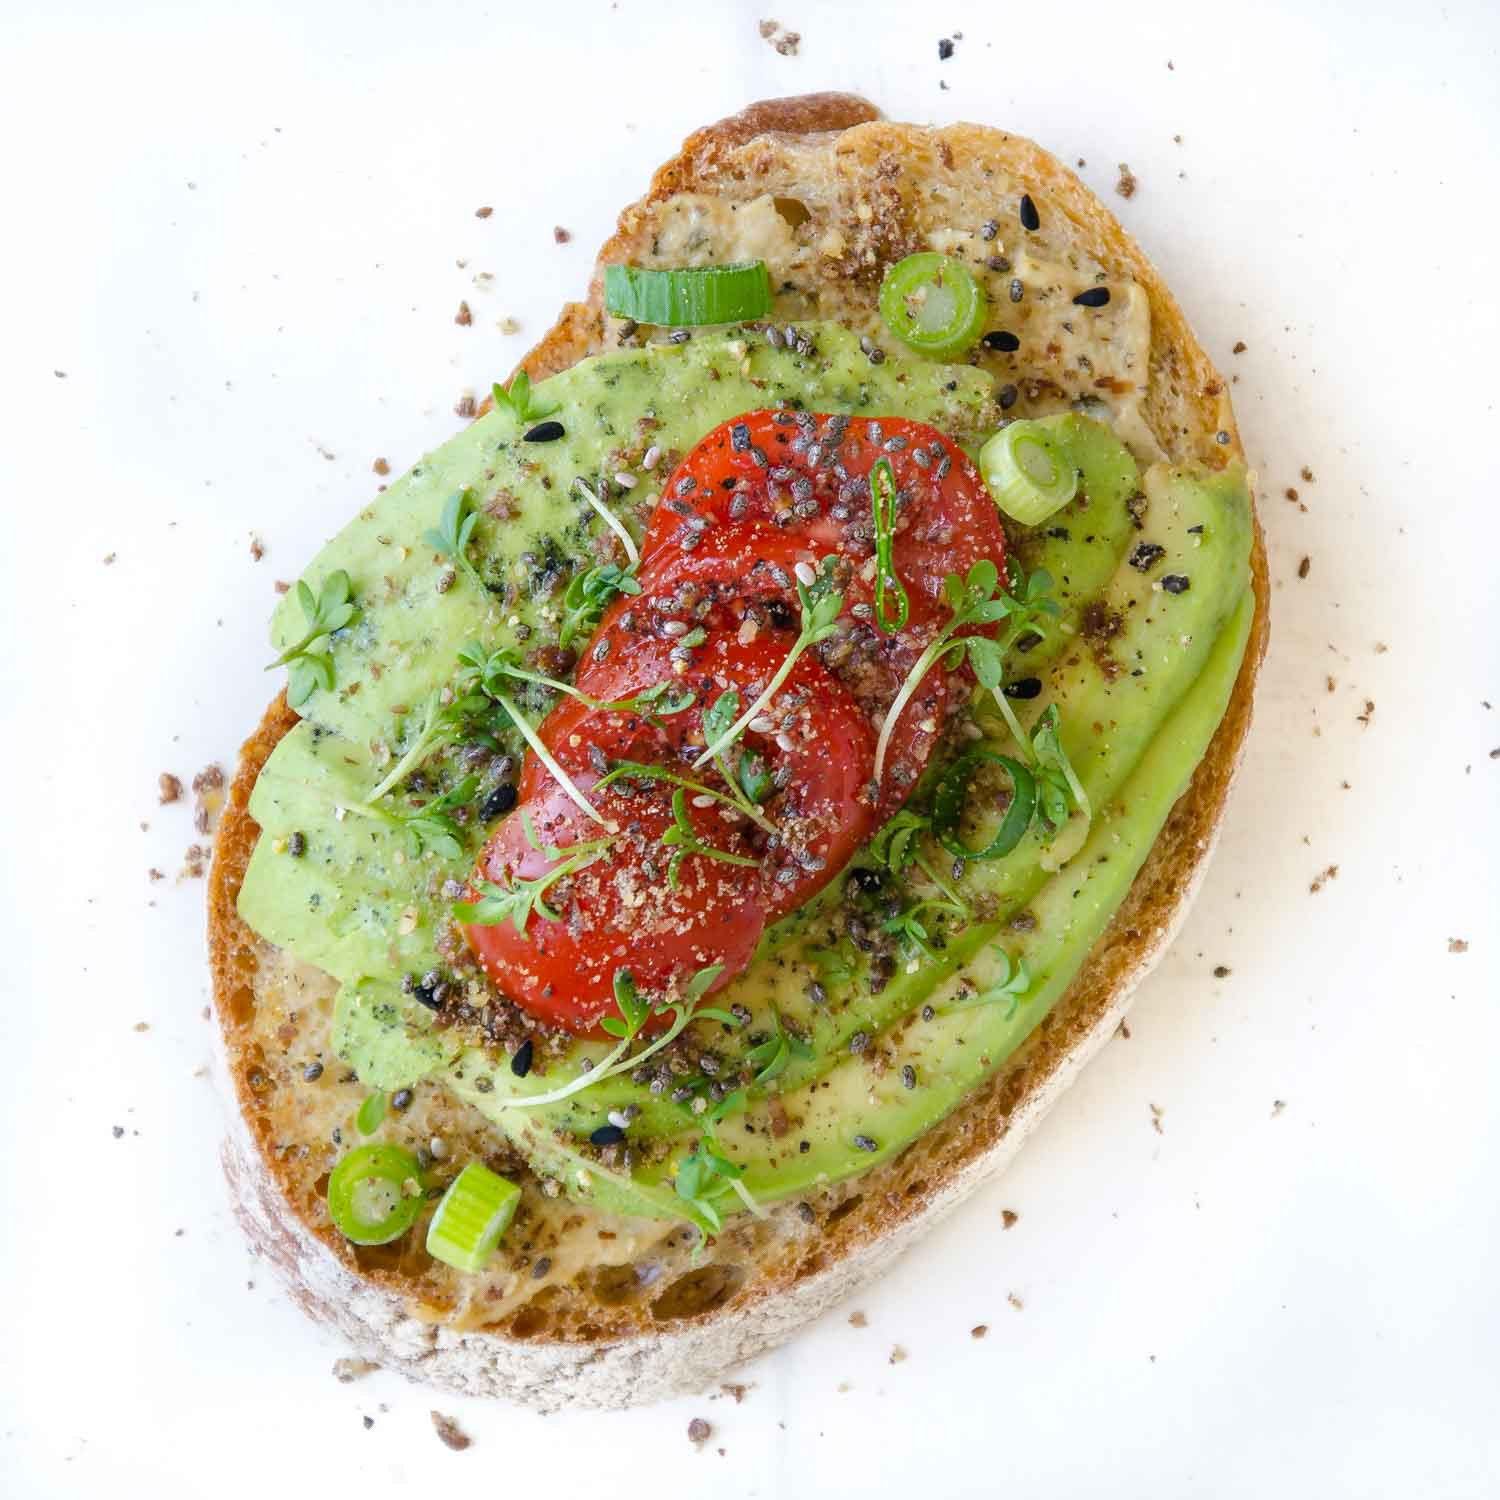 Avocado-Brot